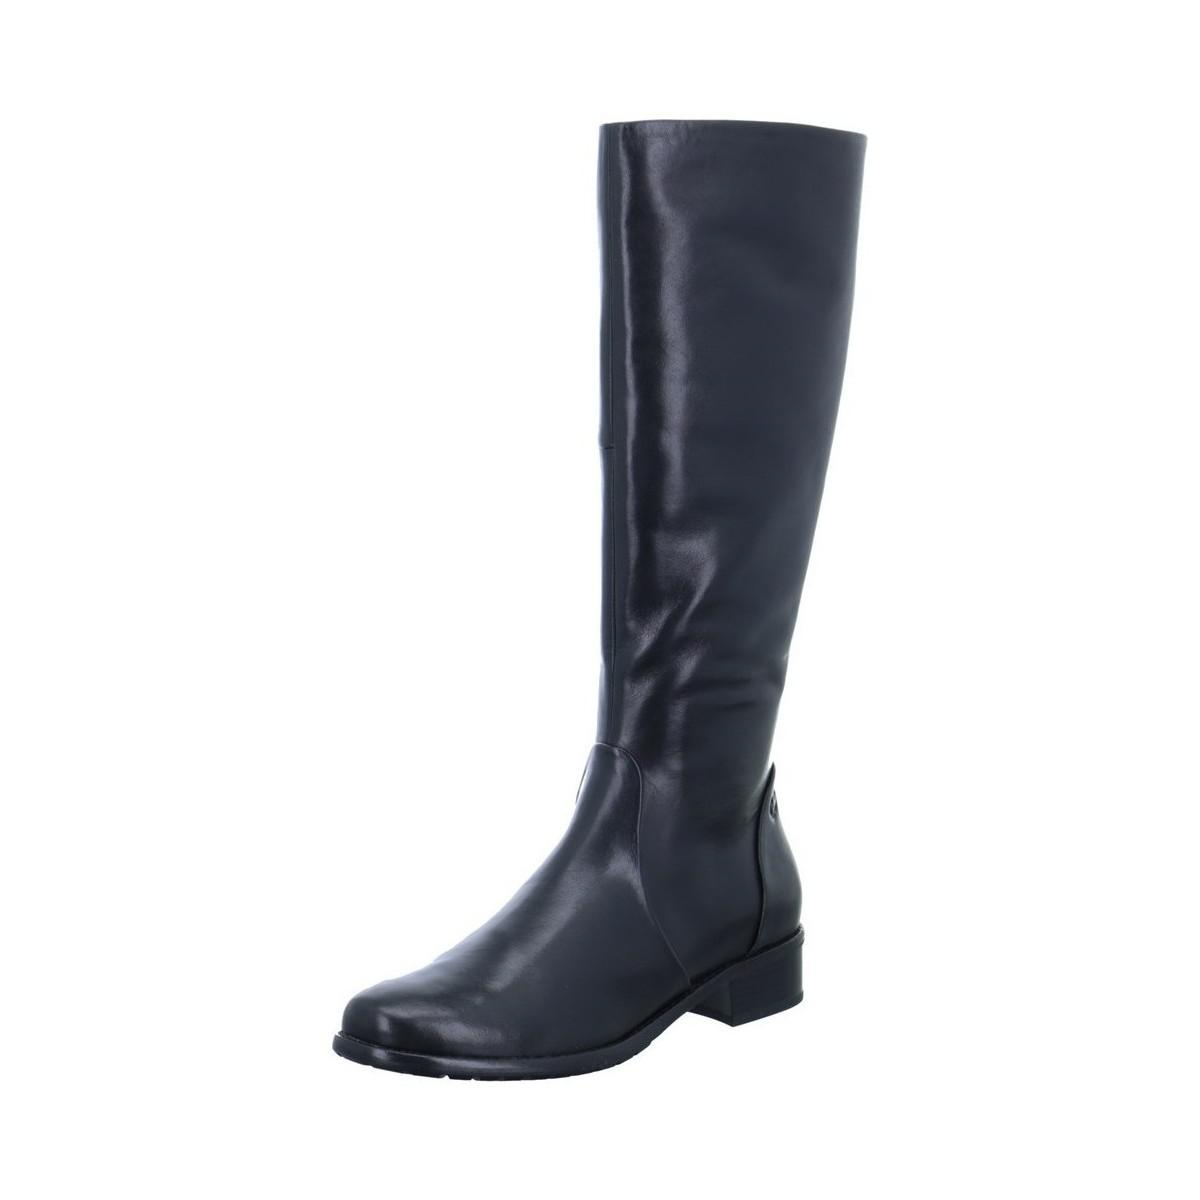 Cheap Sale Reliable Top Quality Cheap Price Gerry Weber Liliana 18 women's High Boots in PAimG